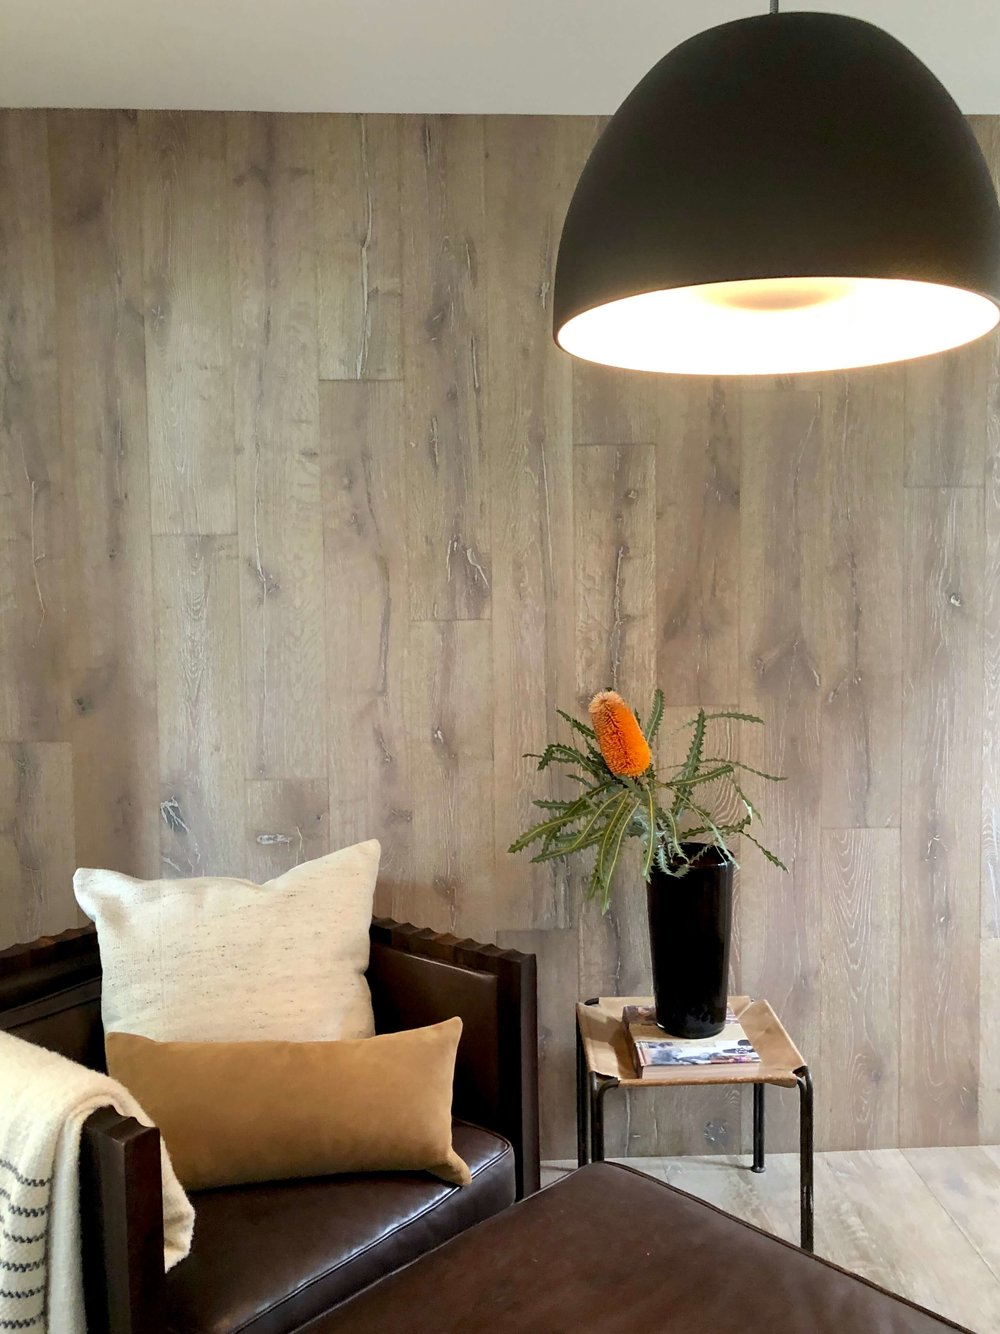 Lounge seating area with wood plank wall #woodwall #leatherchair